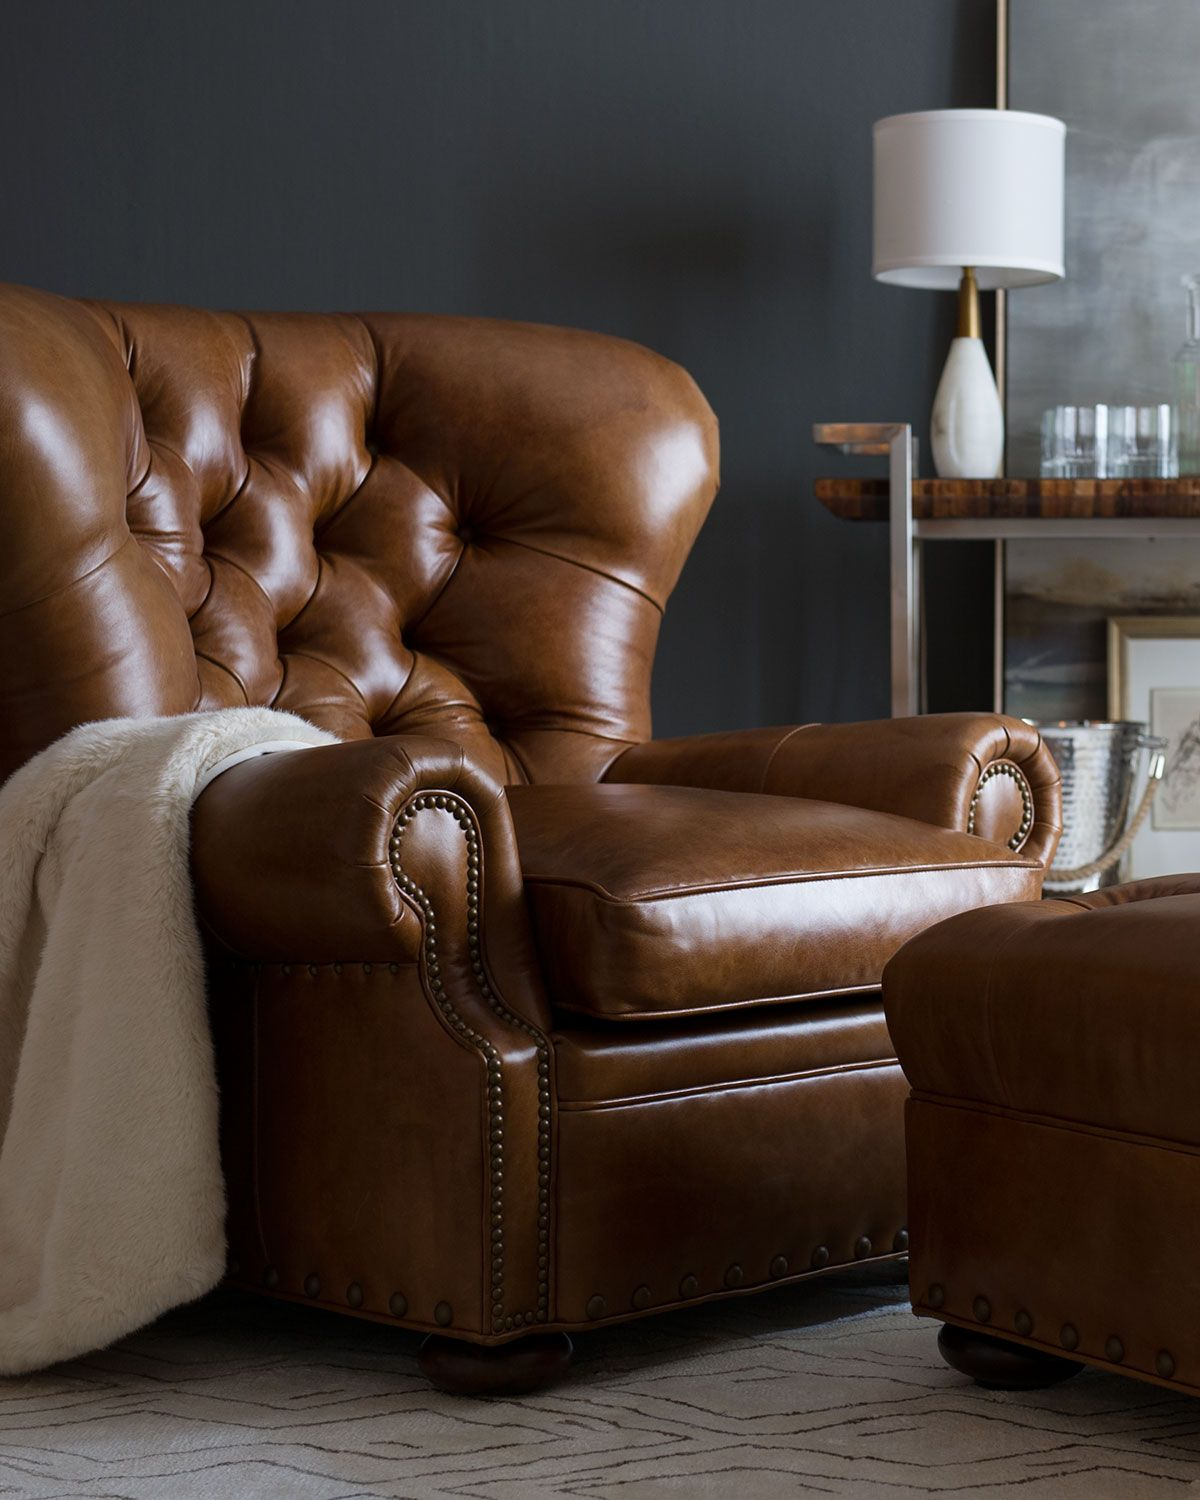 Everett Tufted Leather Settee In 2019: Lansbury Tufted-Leather Ottoman